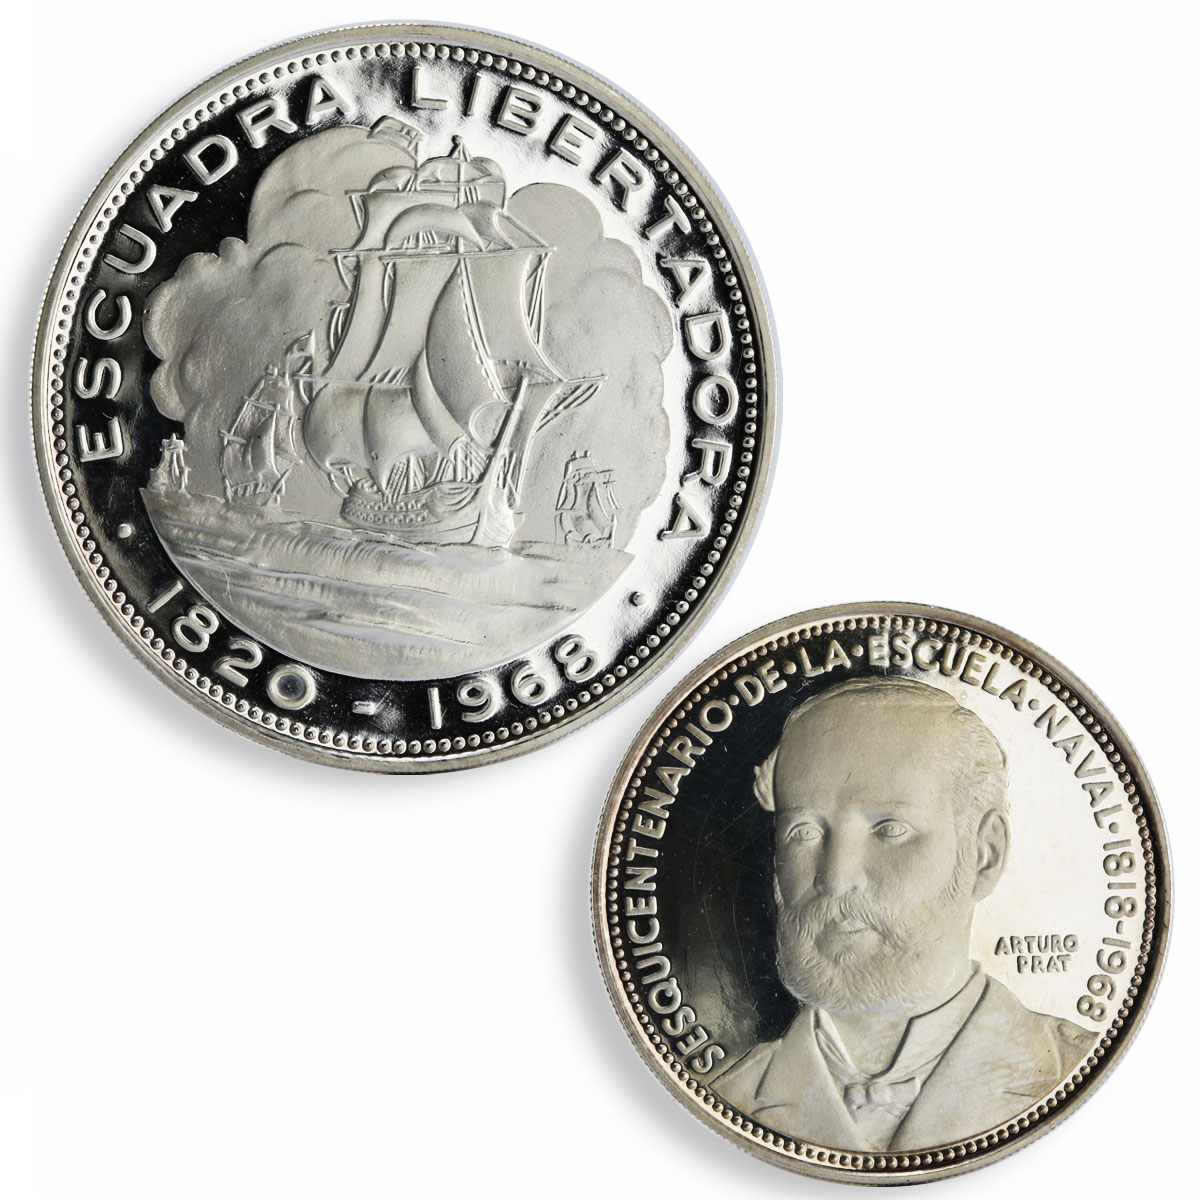 Chile set of 2 coins Captain Arturo Liberation Fleet proof silver coin 1968